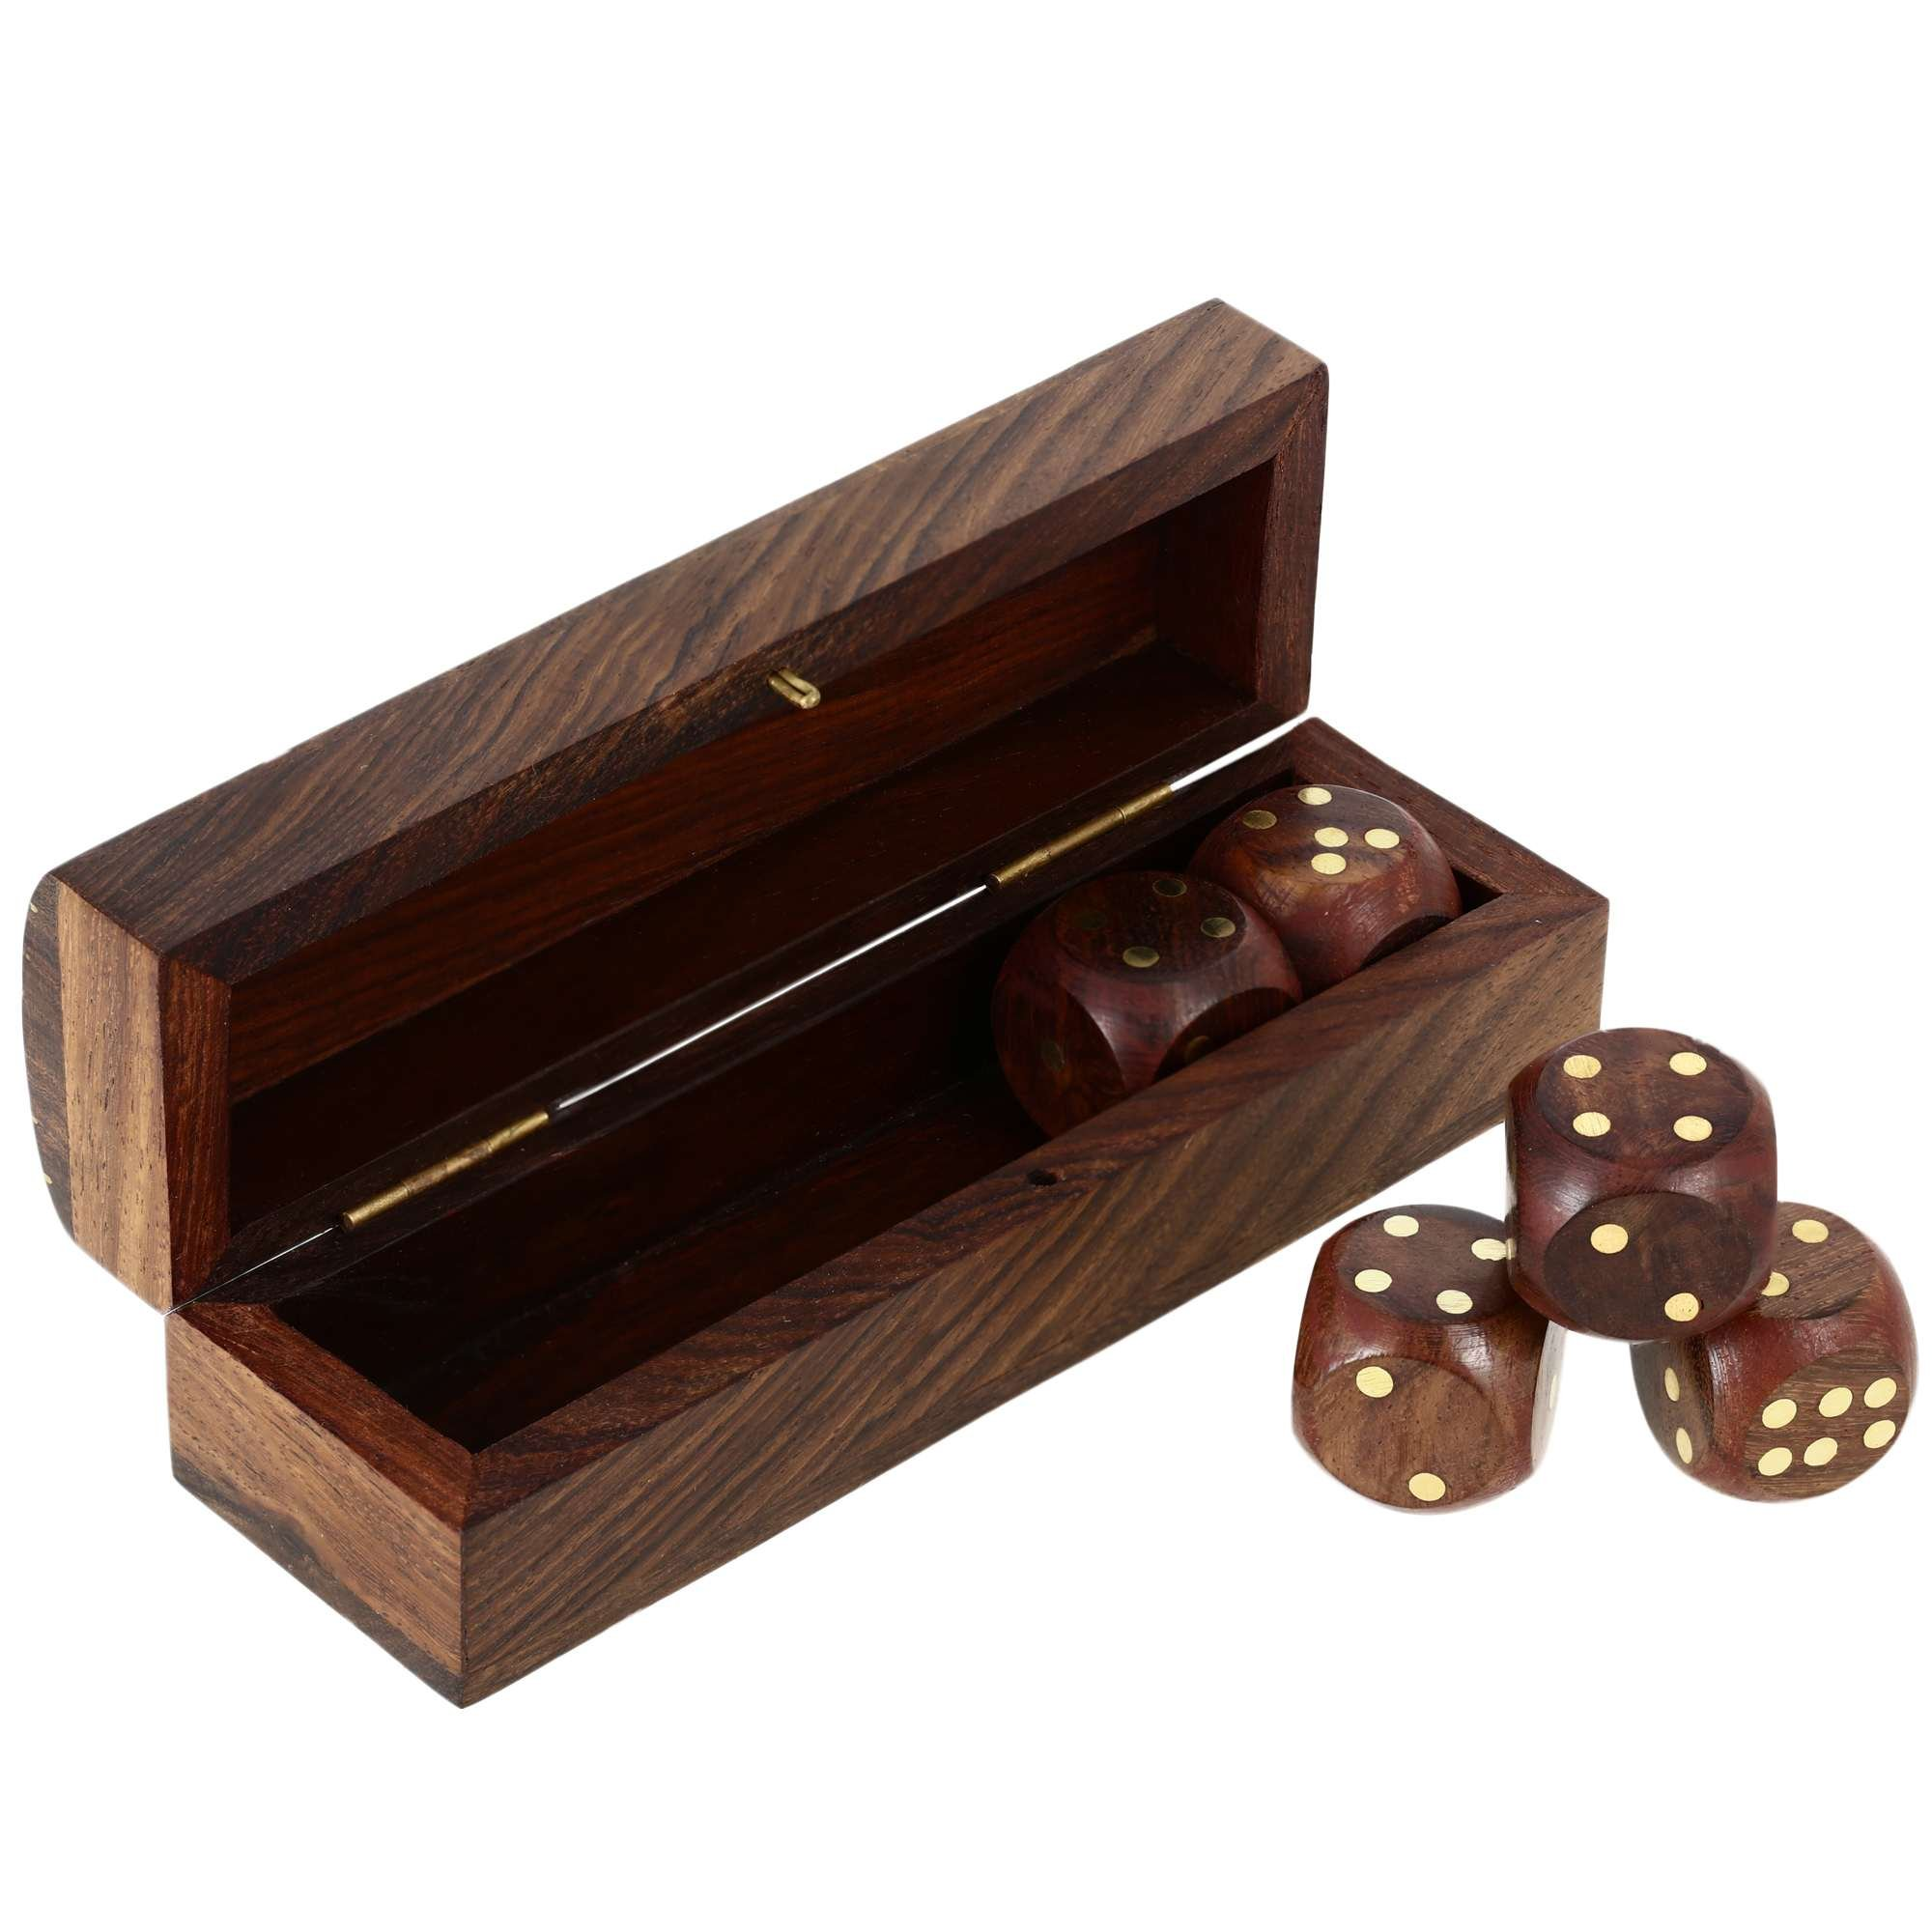 Indian Game Wooden Dice Set In A Box Brass Inlay Art 5.25 X 1.5 Inch by ShalinIndia